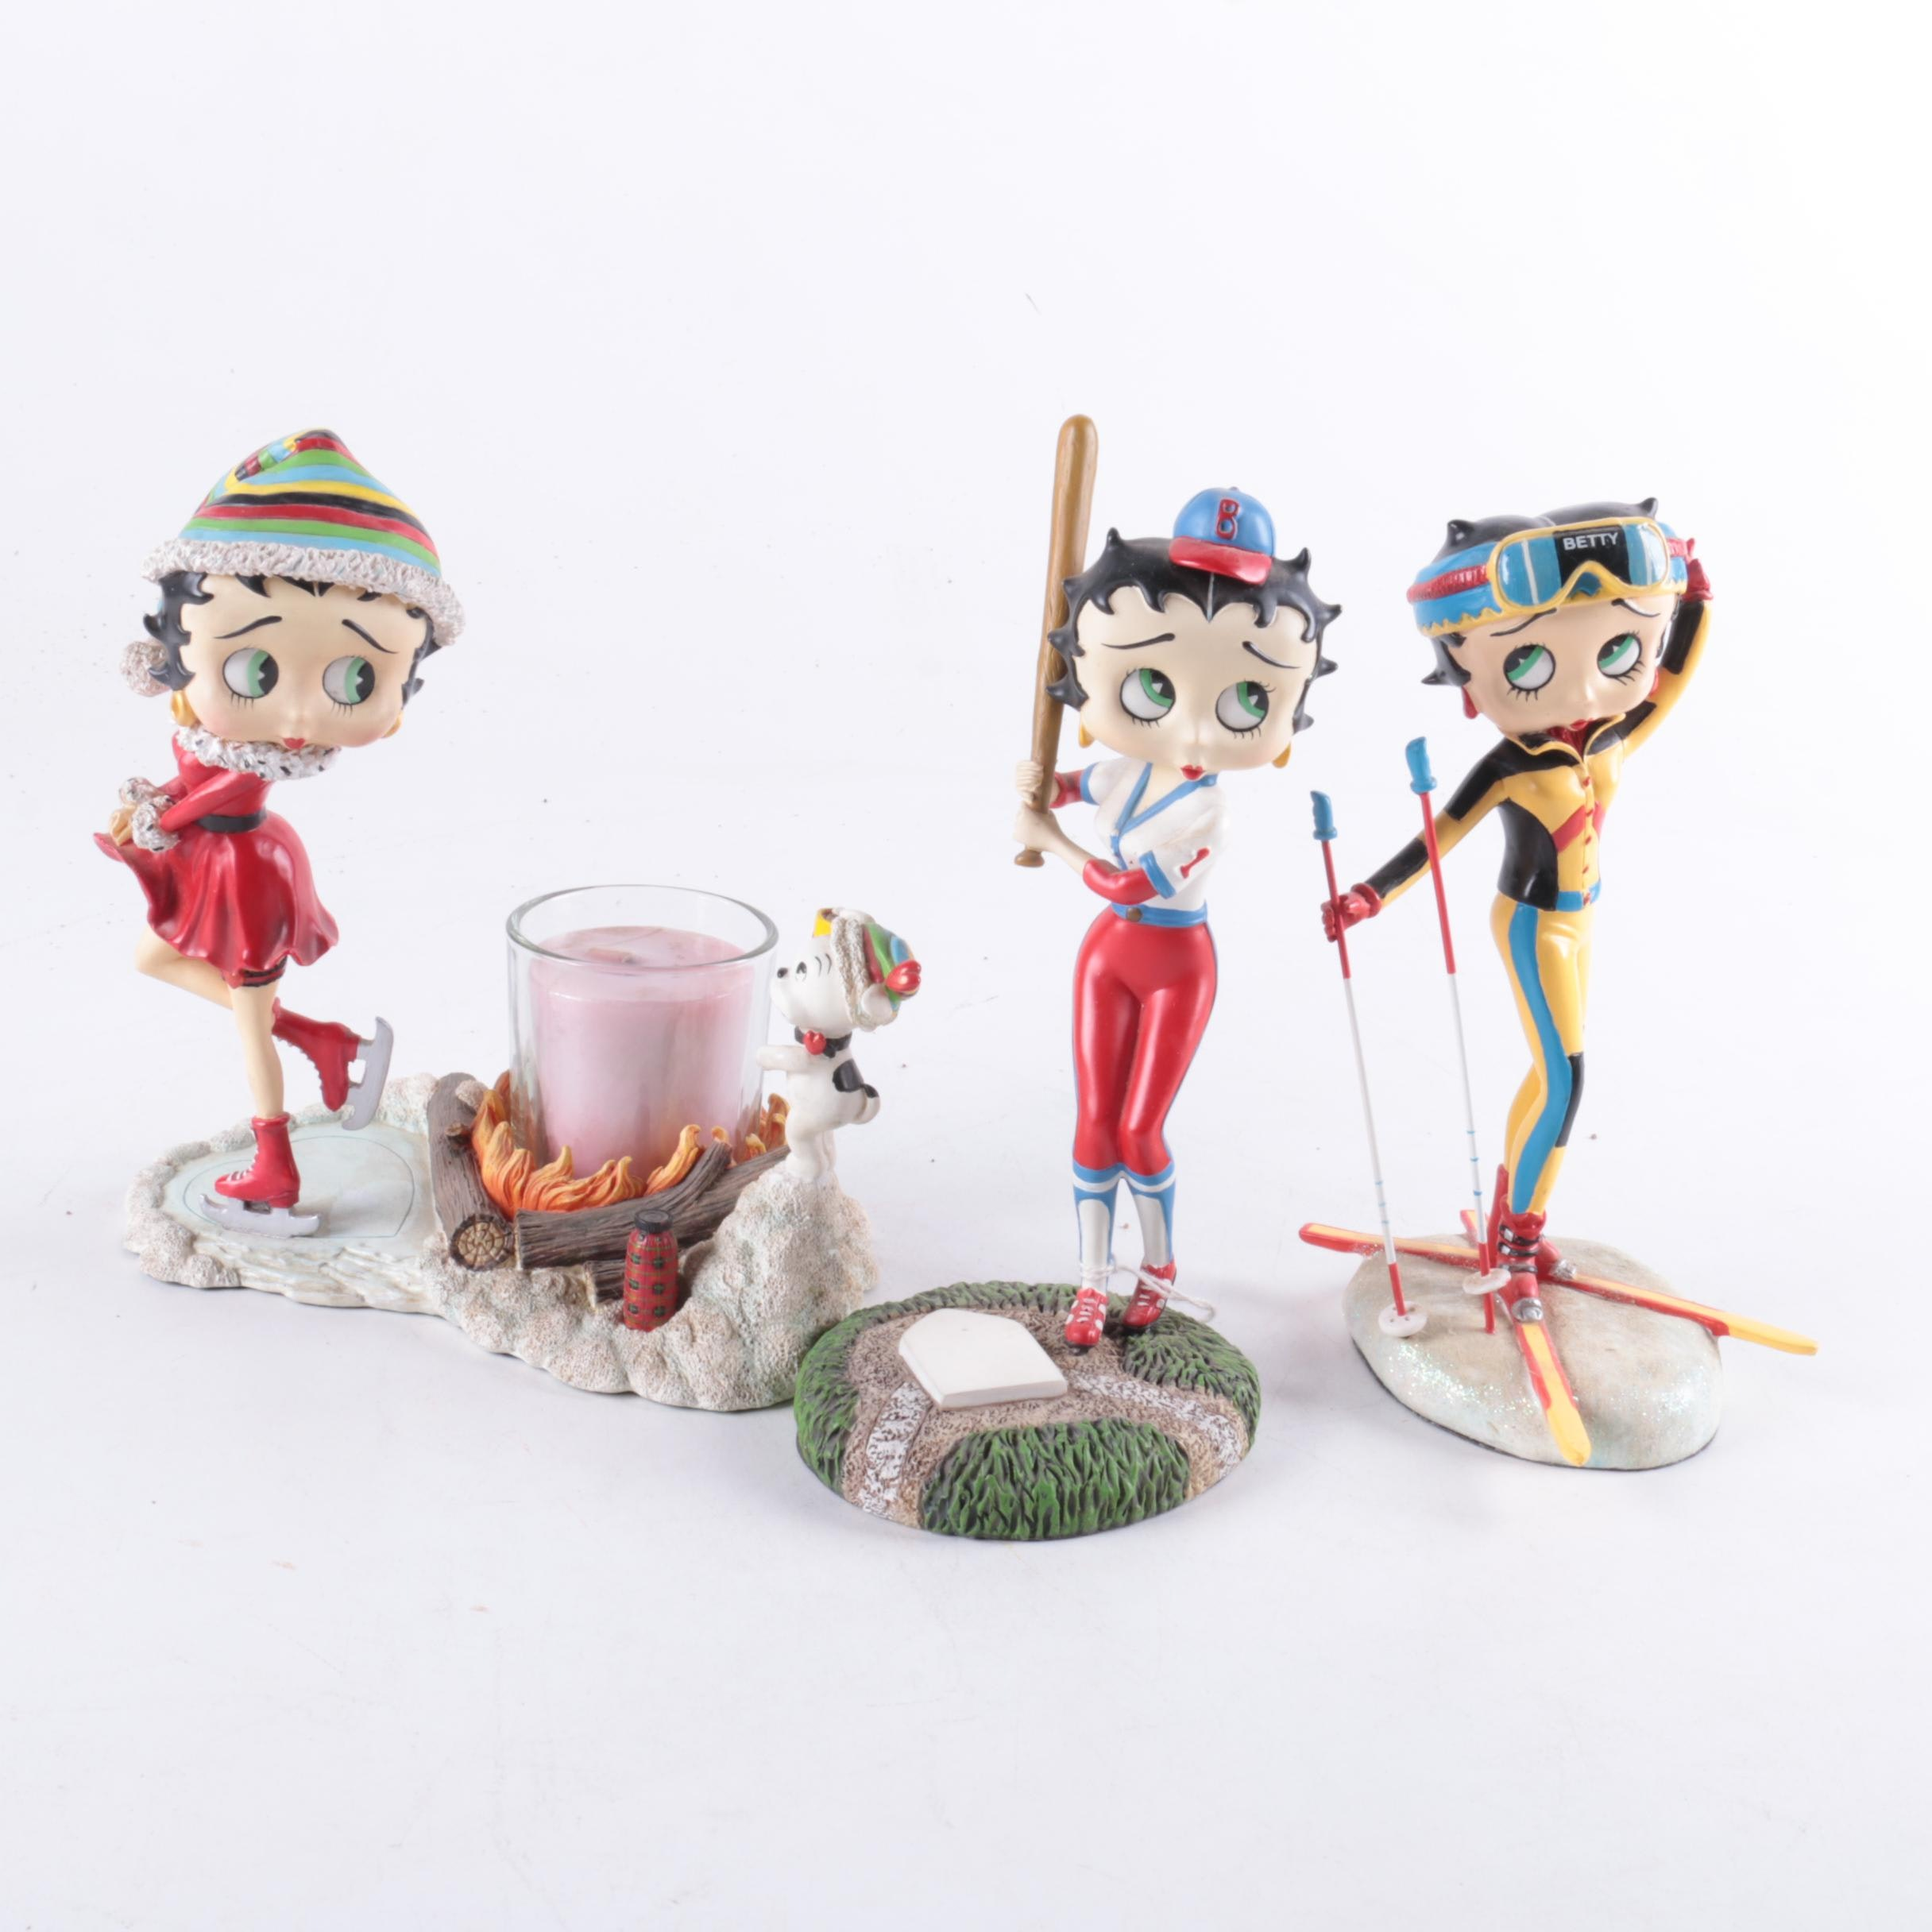 Betty Boop Figurines by the Danbury Mint